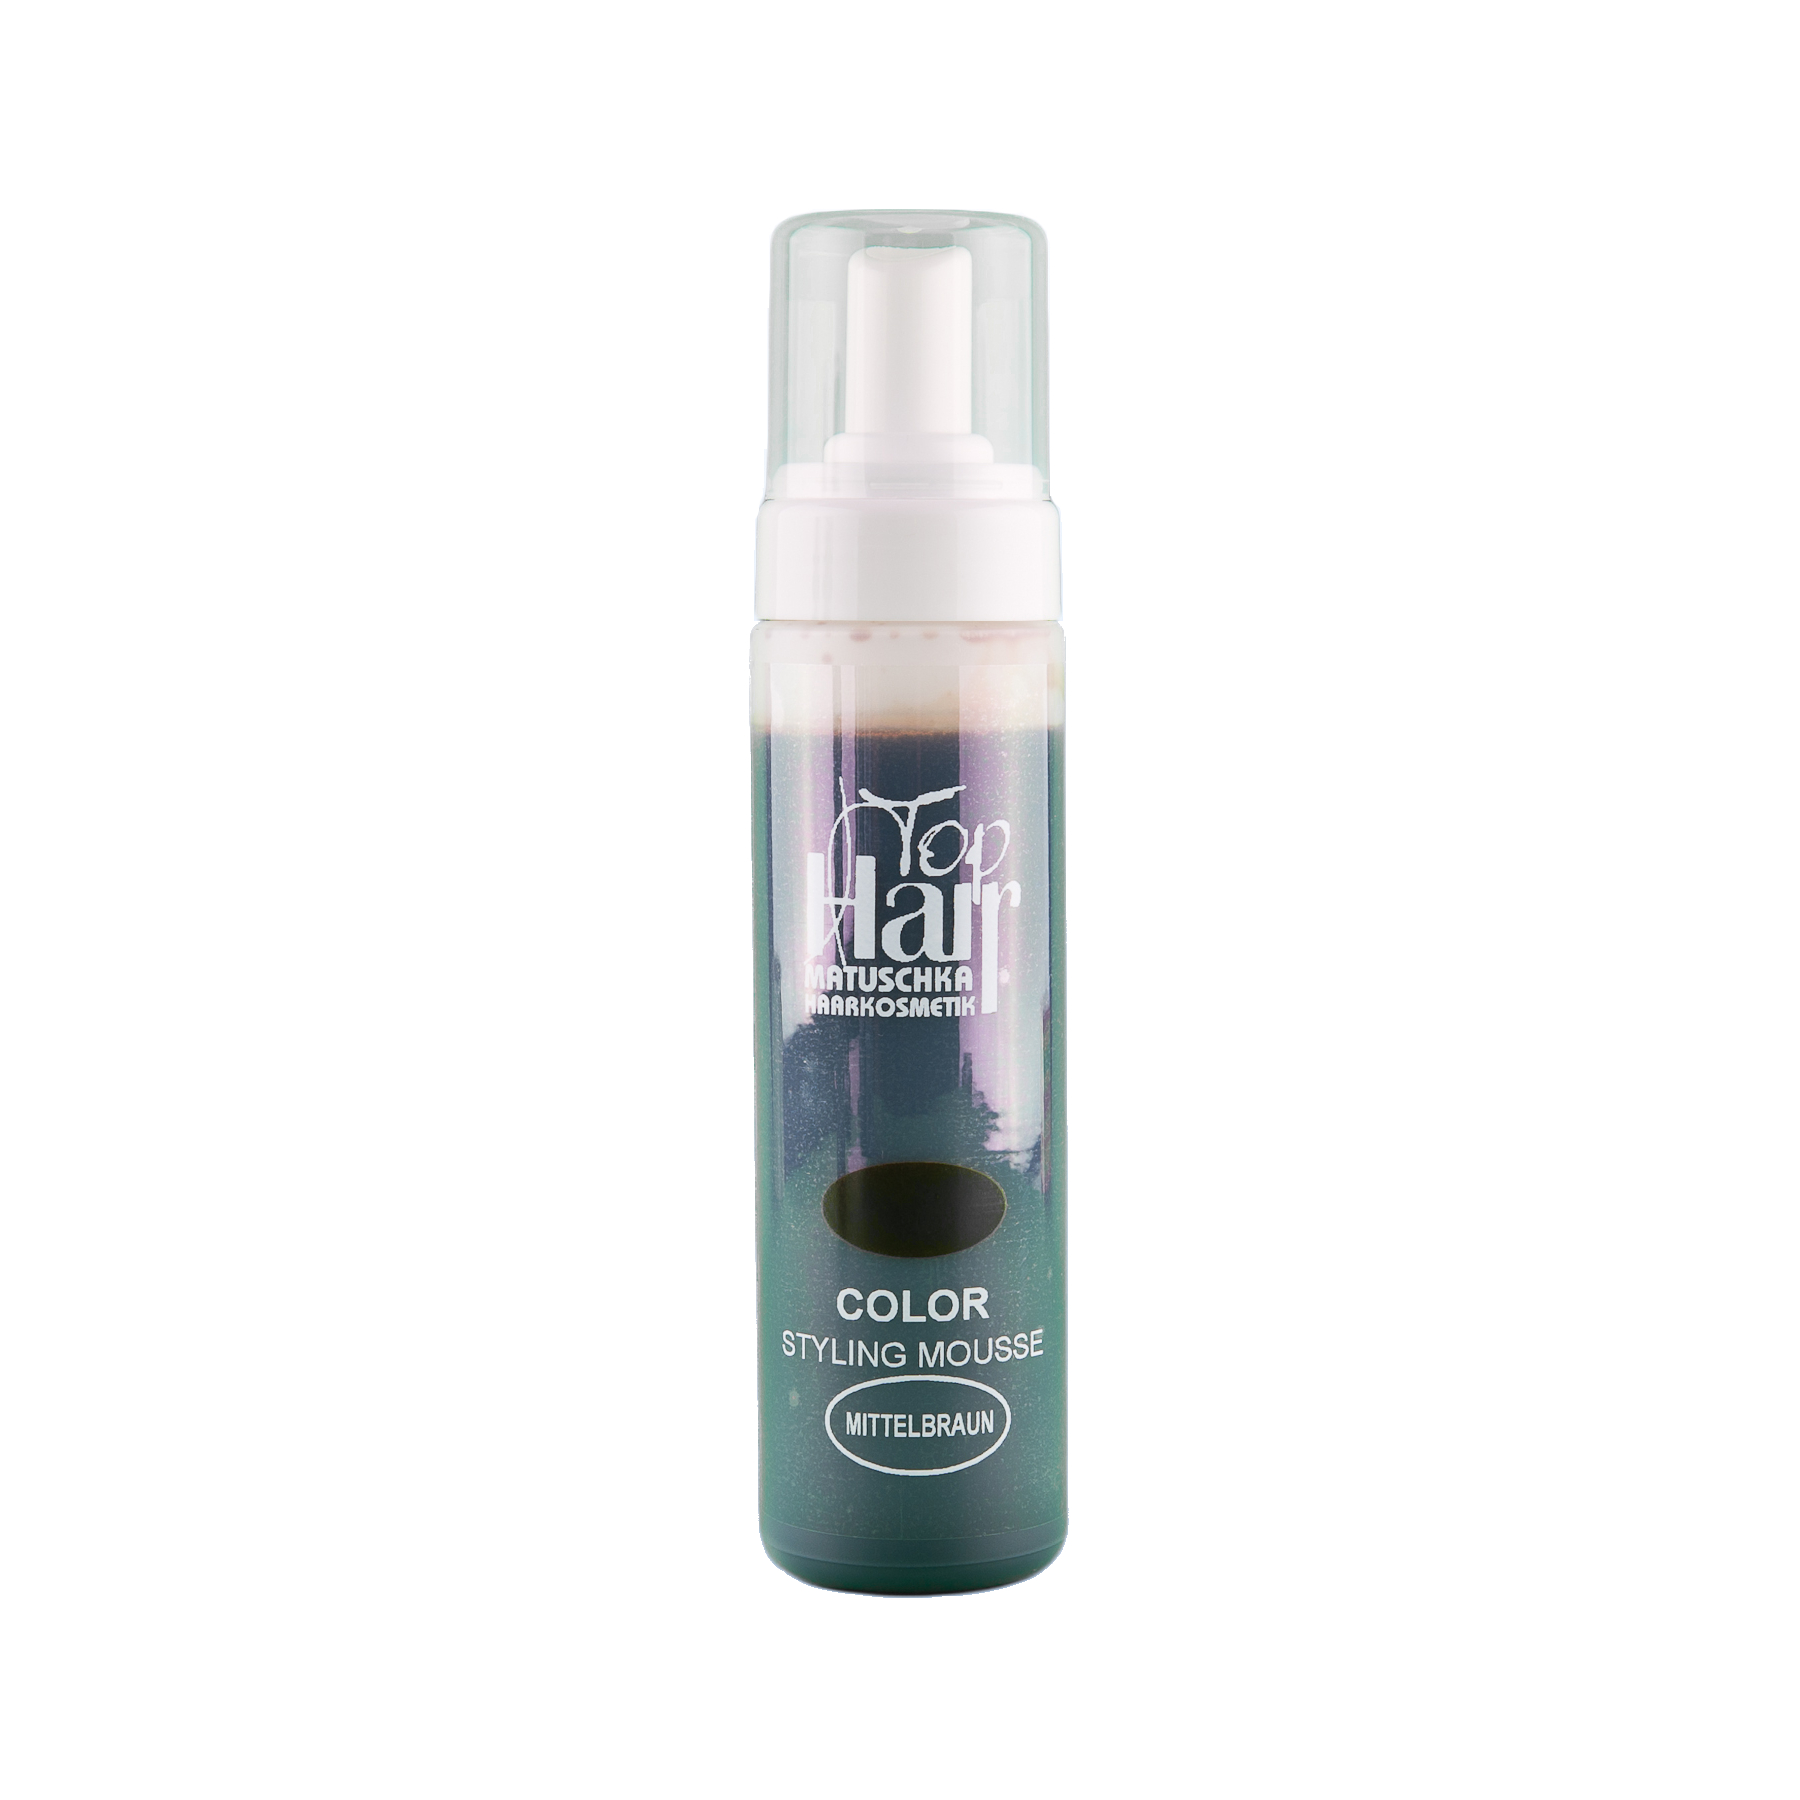 Color Styling Mousse Mittelbraun  200ml